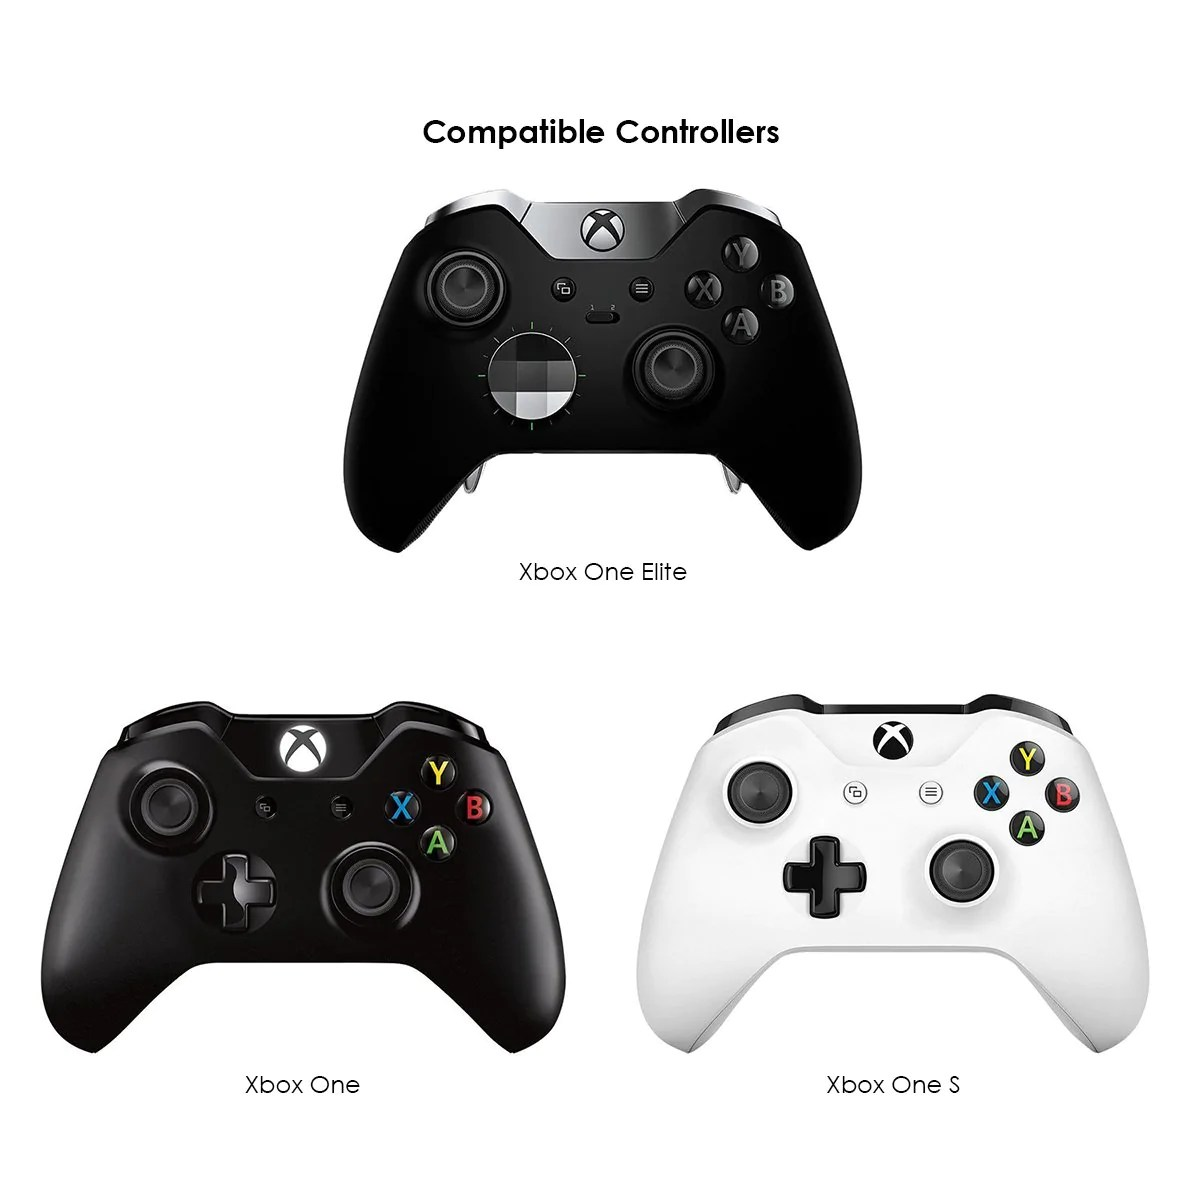 xbox one controller usb gamesir xbox one controller charger with 2 800mah [ 1200 x 1200 Pixel ]